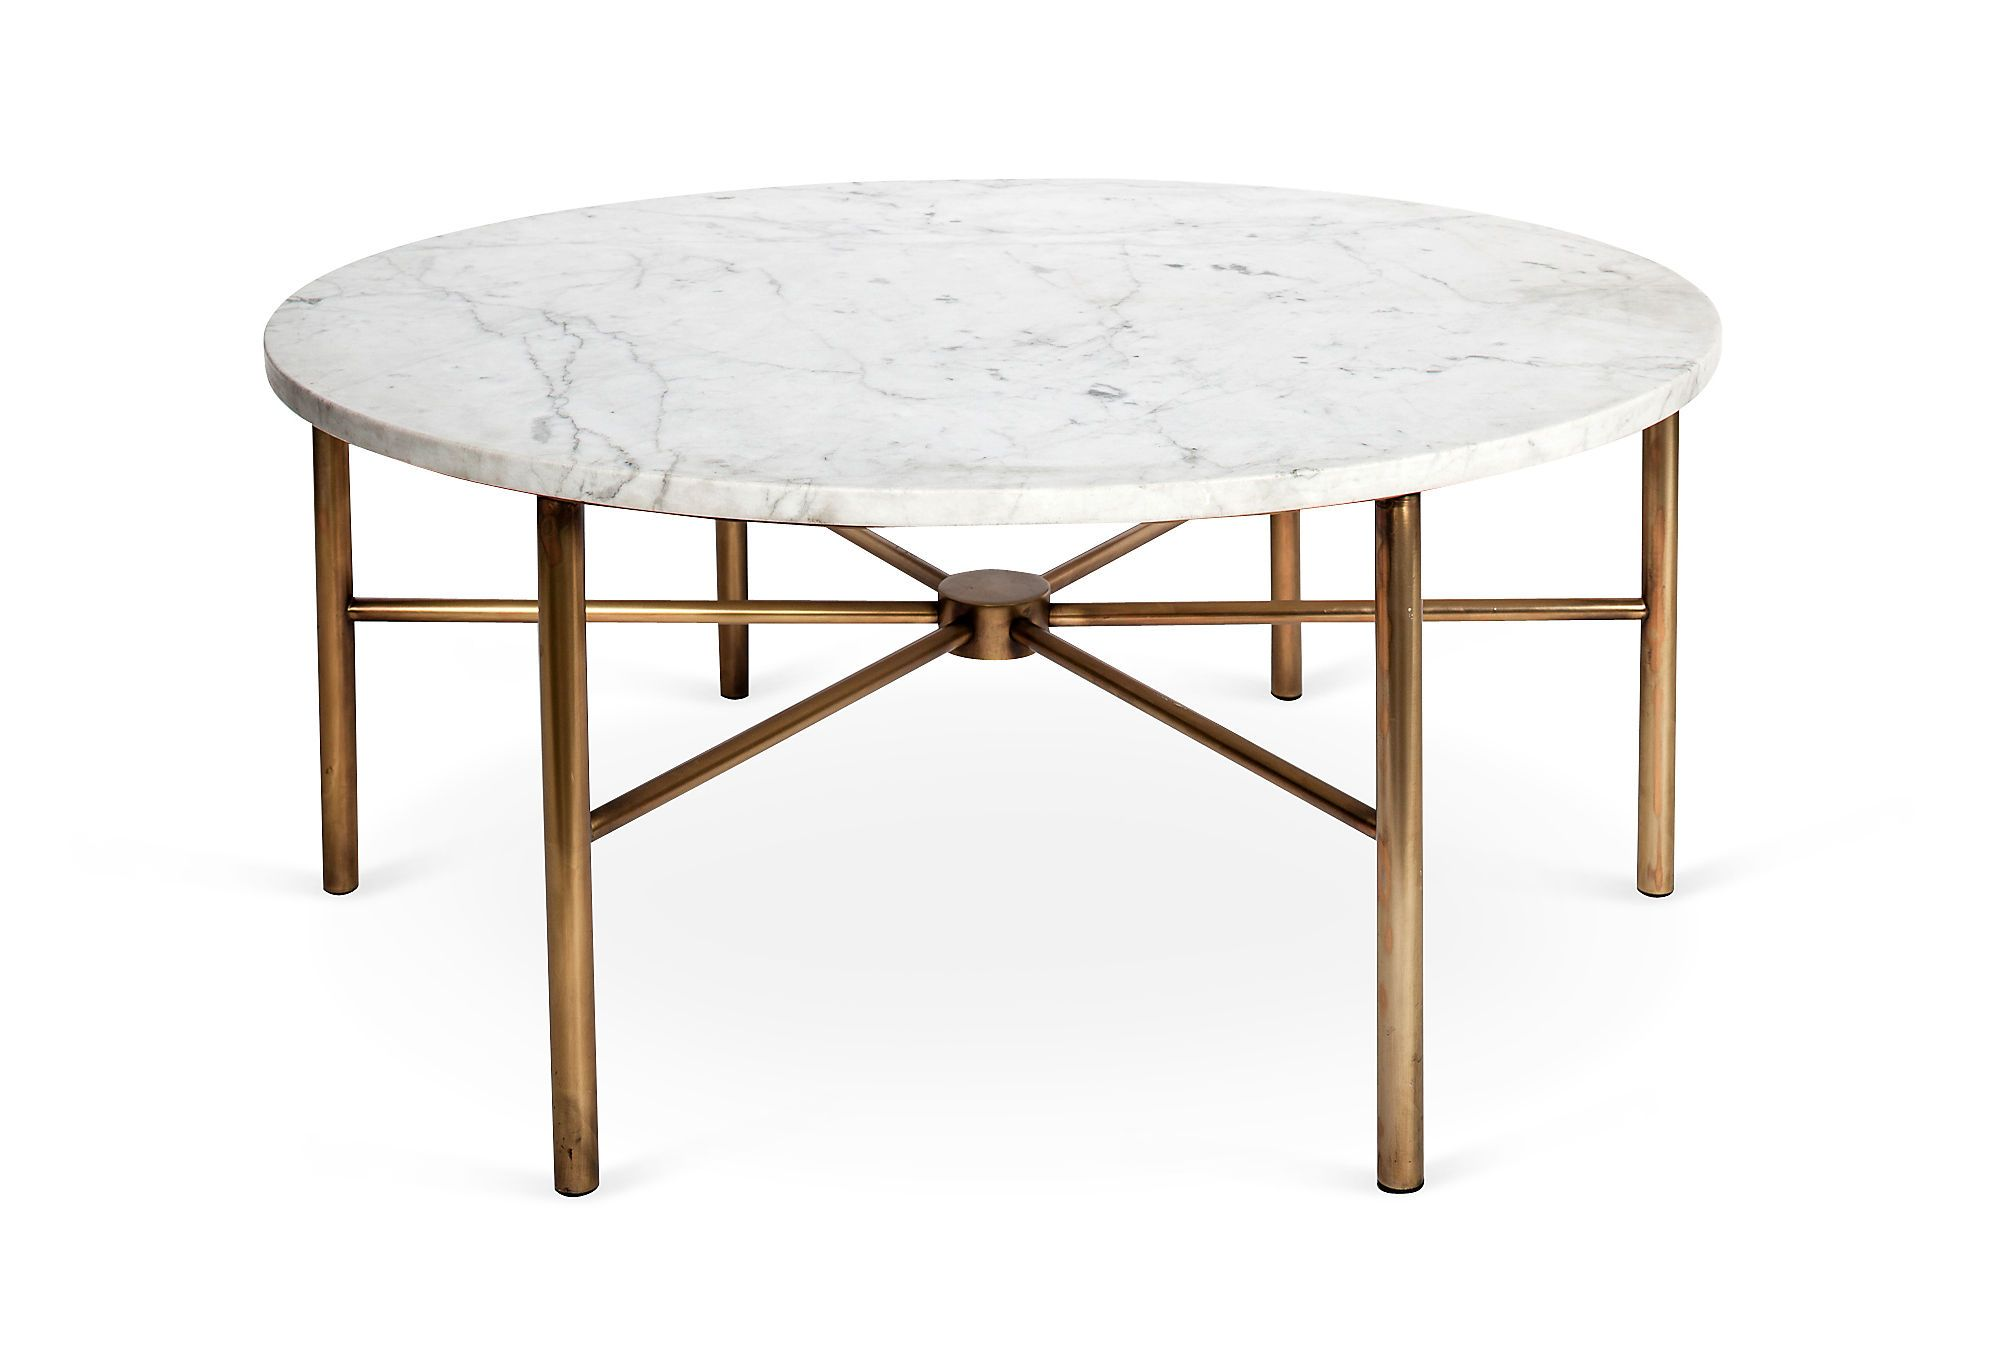 Brass Marble Round Coffee Table Marble Round Coffee Table Round Coffee Table Coffee Table [ 1362 x 2000 Pixel ]